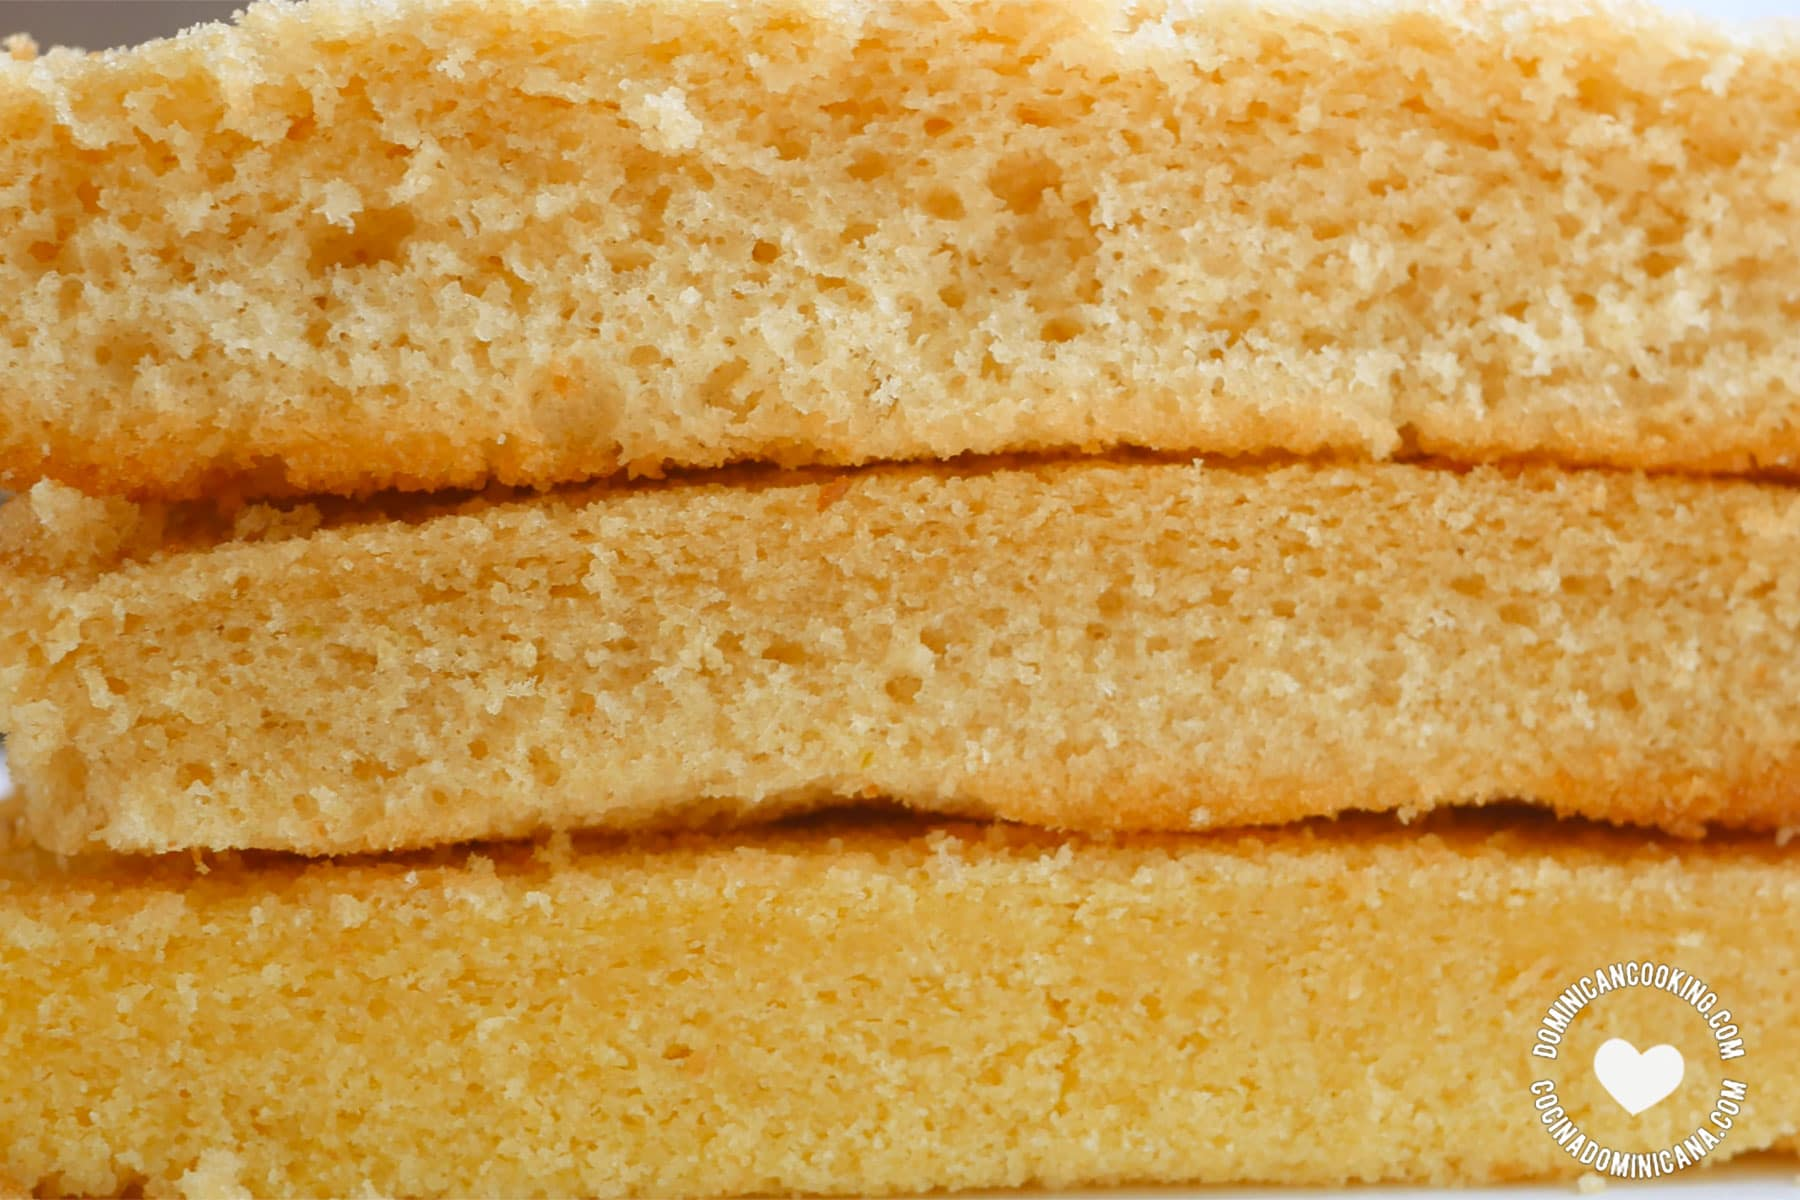 Dominican cake texture